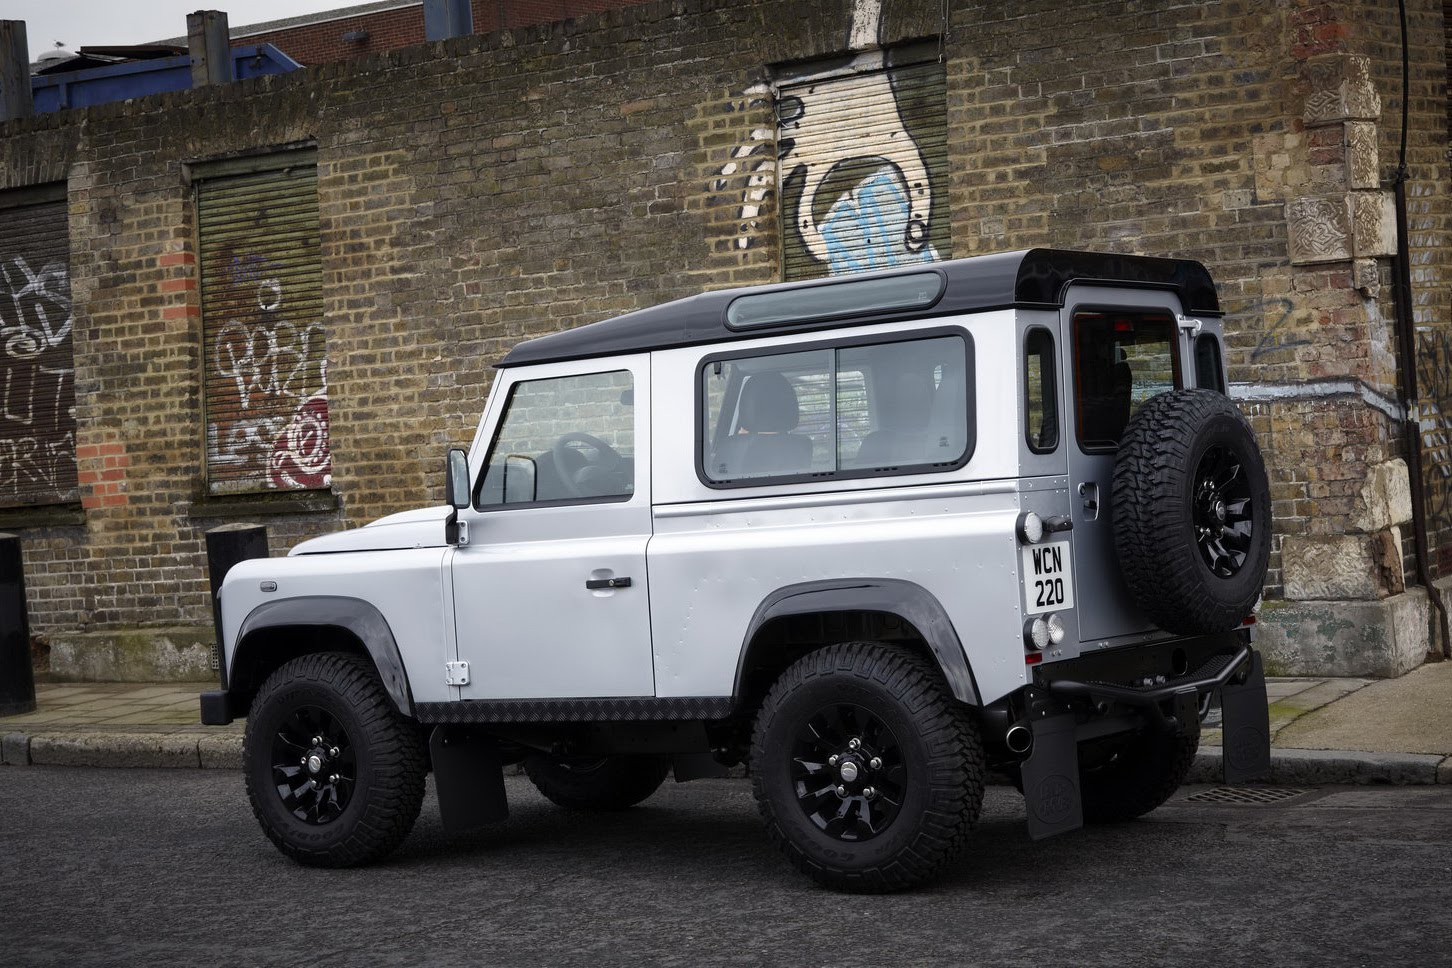 2011 Defender X Tech 6 Land Rover Releases the Limited Edition 2011 Defender X Tech